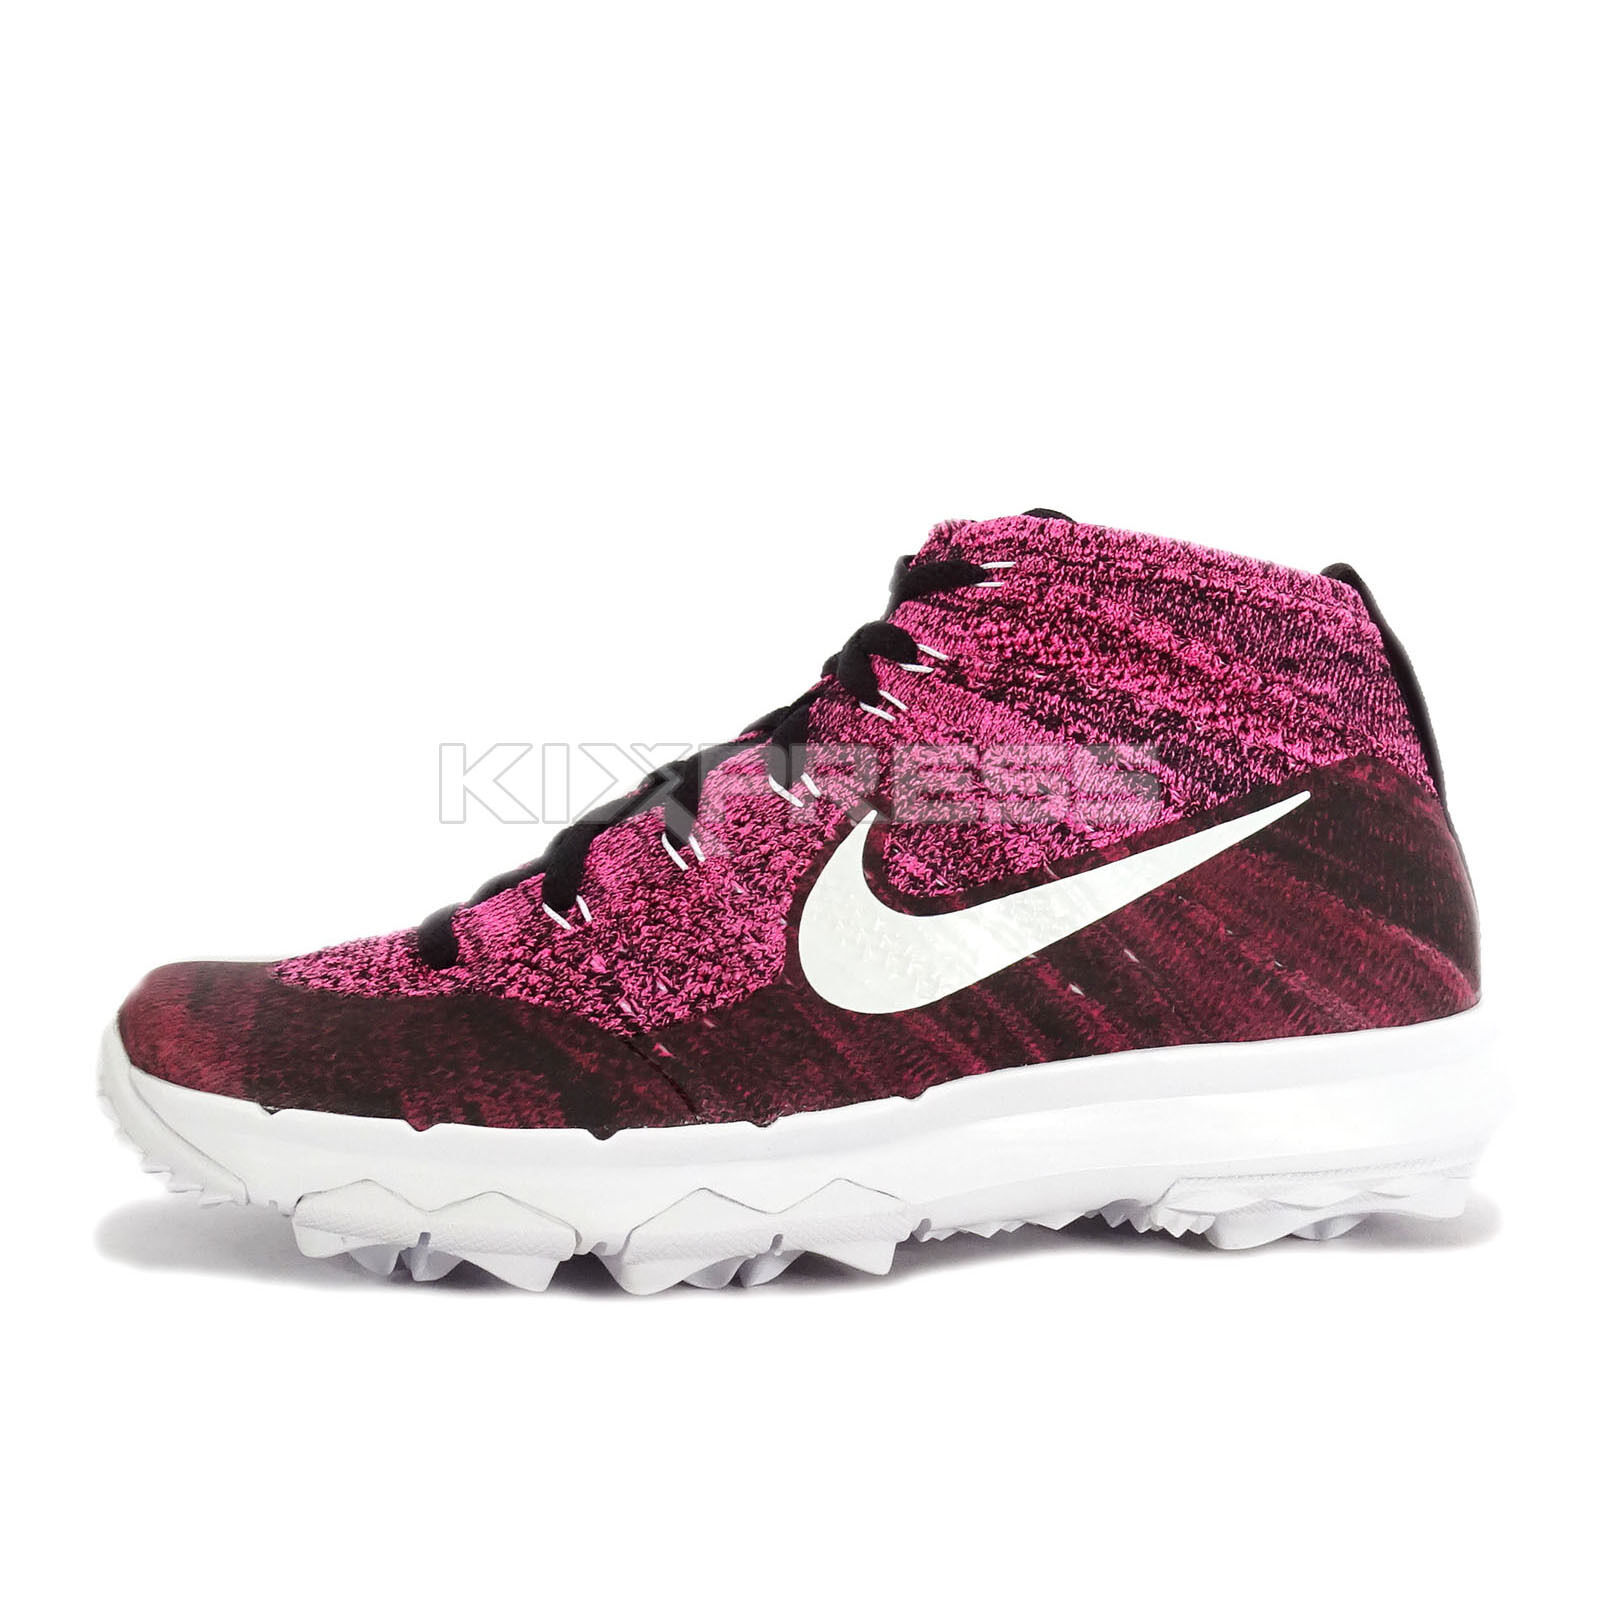 Nike WMNS Flyknit Chukka Price reduction Women Golf Shoes Burgundy/Pink-White